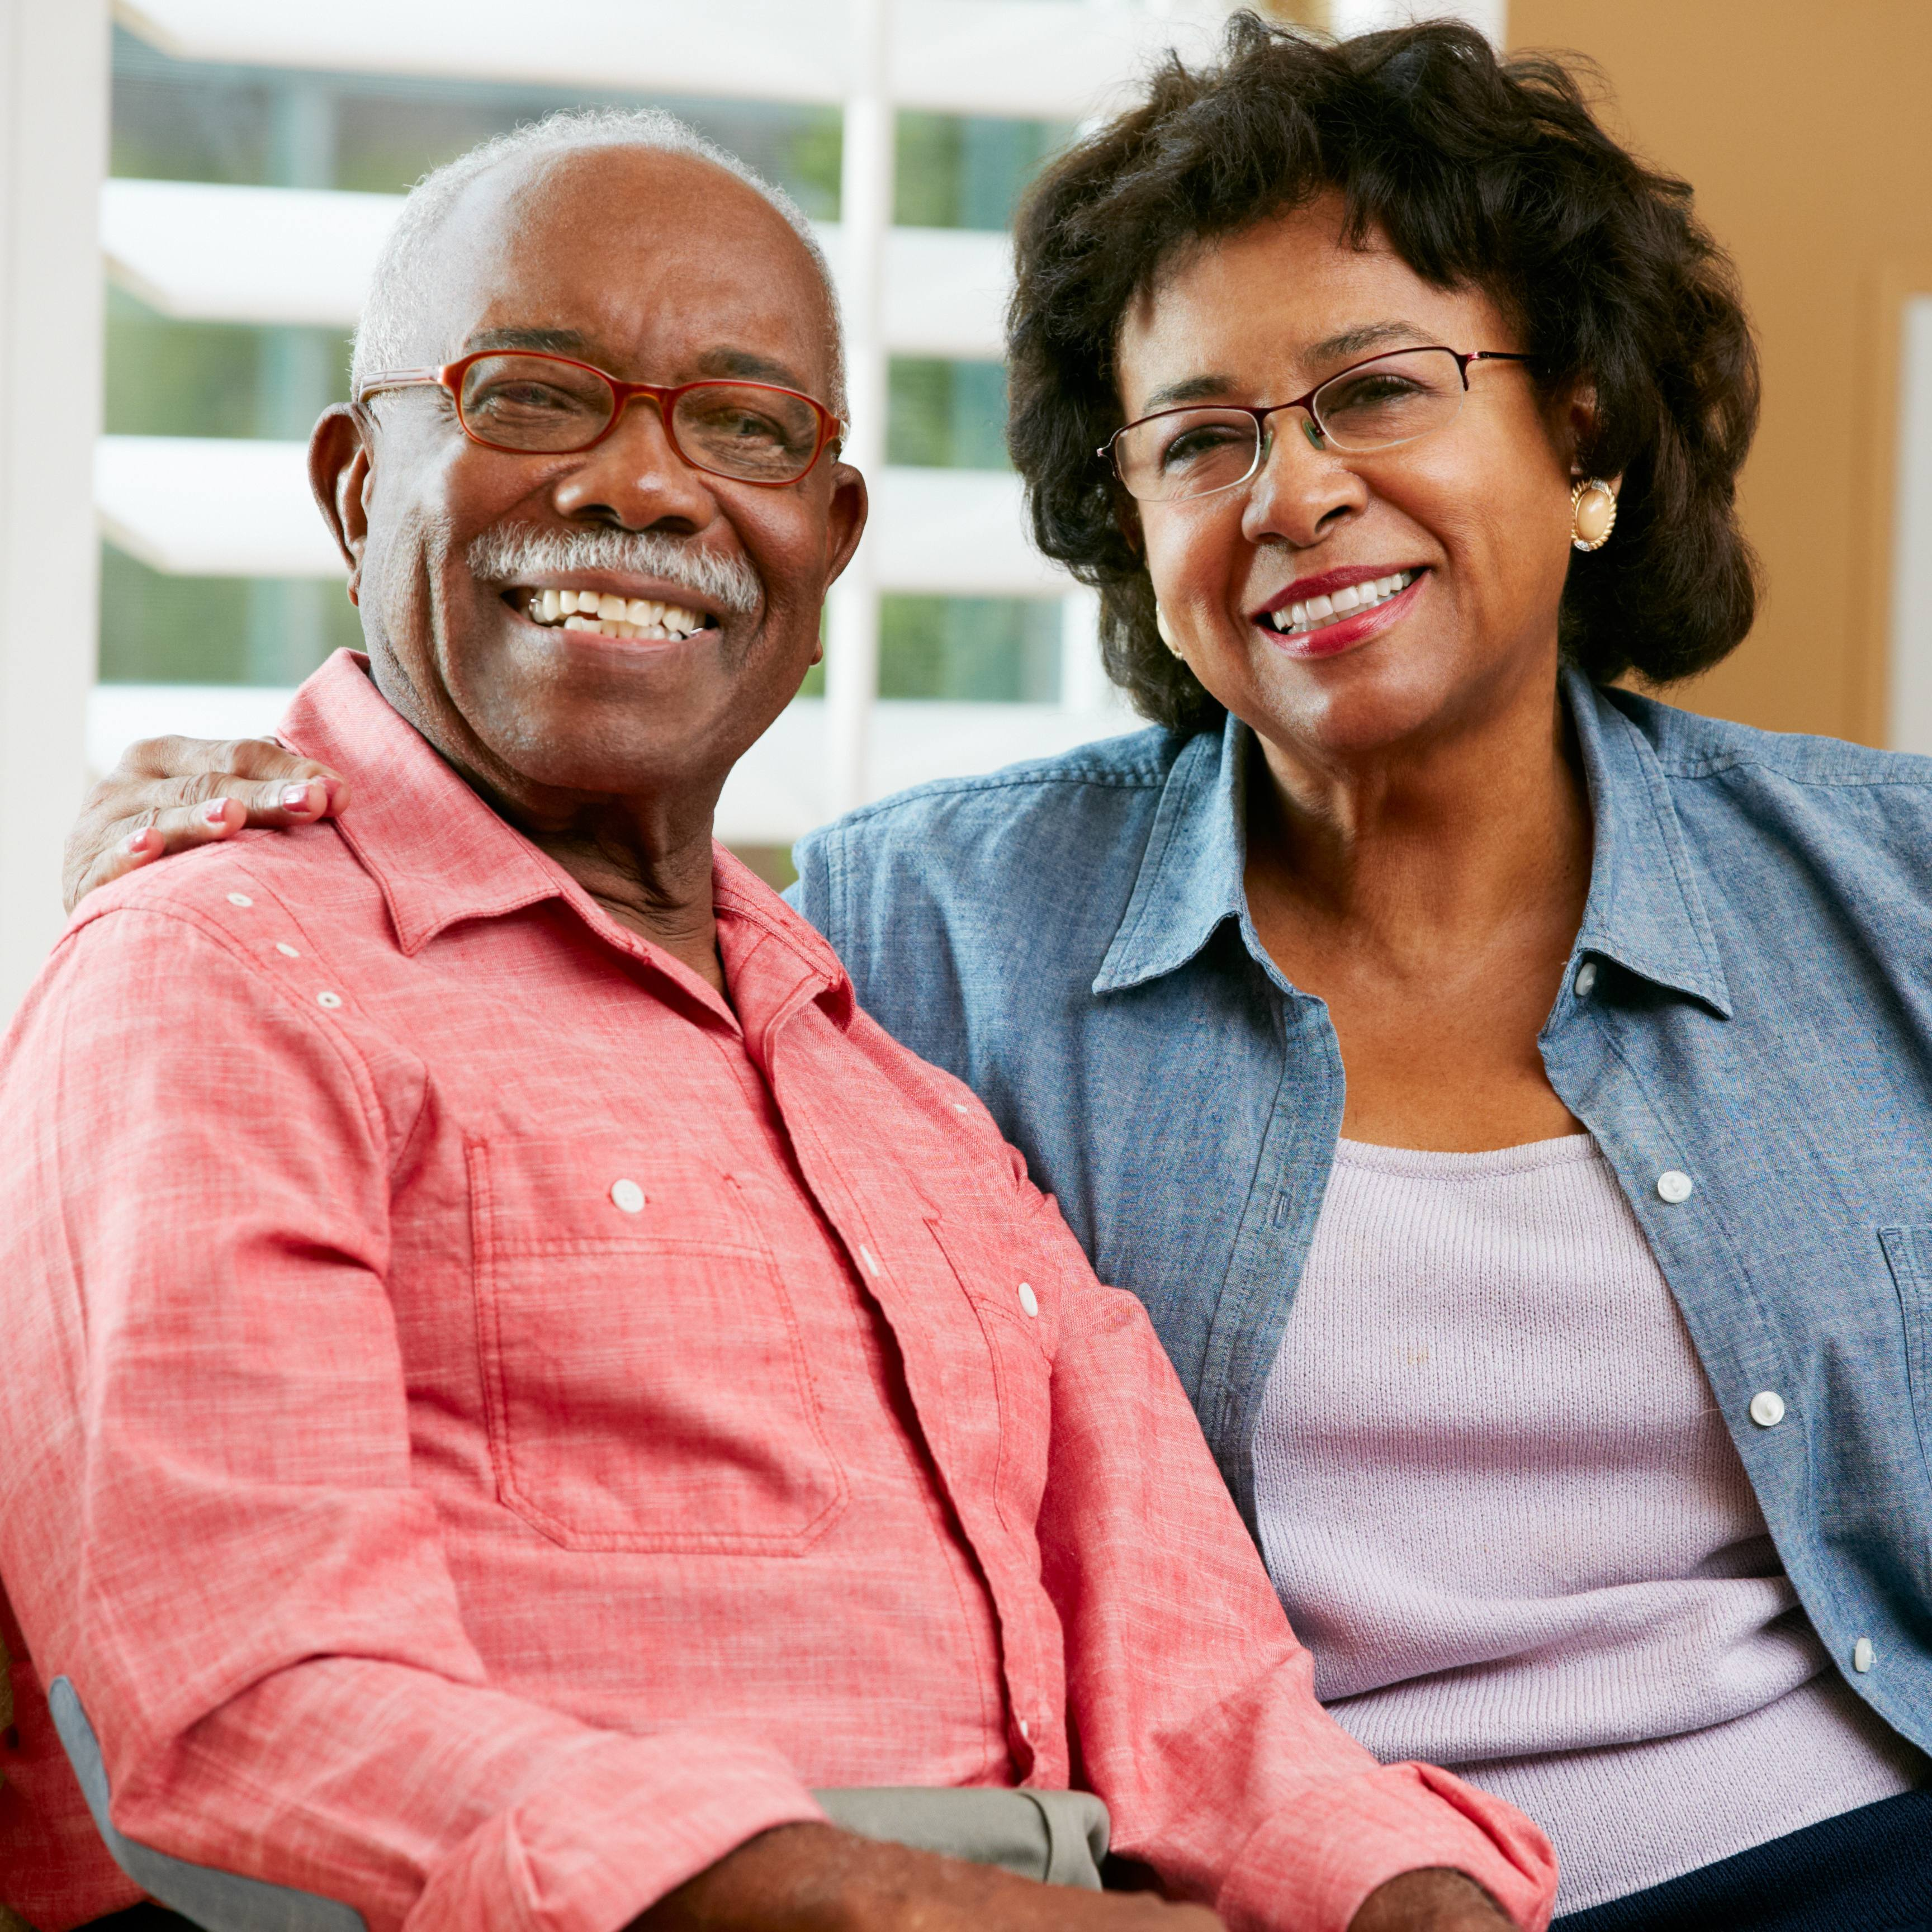 a smiling older couple at home, sitting together on a couch